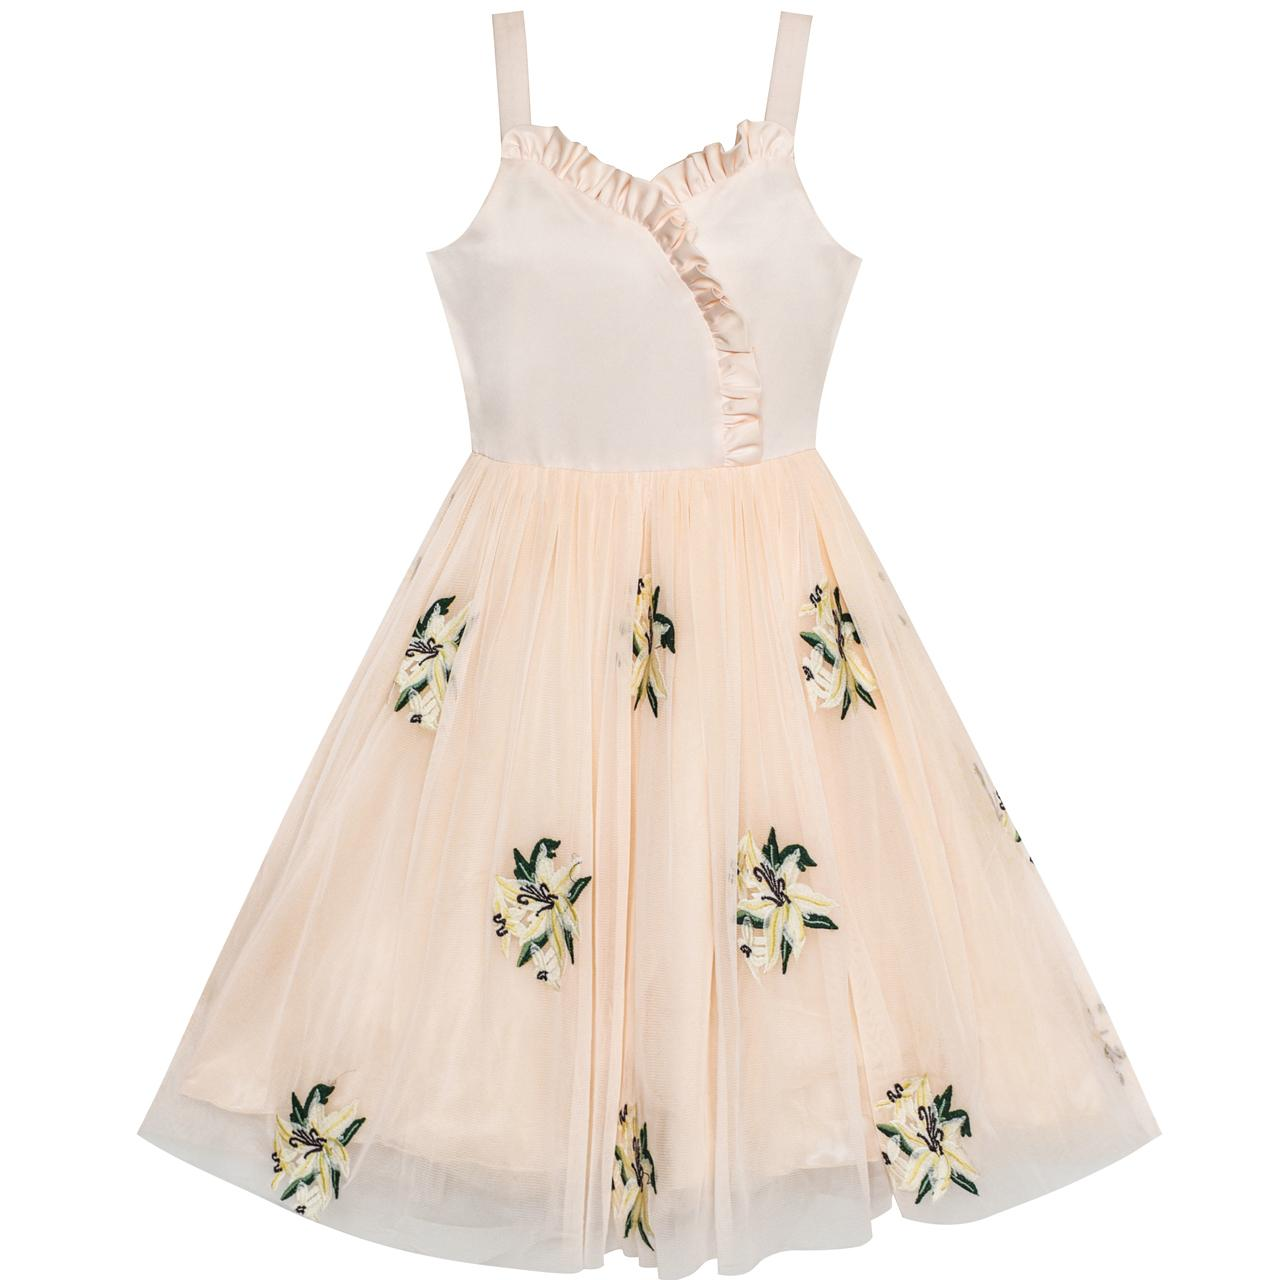 Sunny Fashion Flower Girl Dress Lily Flower Embroidered Wedding Party 2018 Summer Princess Dresses Girl Clothes Size 6-12 миска lily flower g2286 h4266